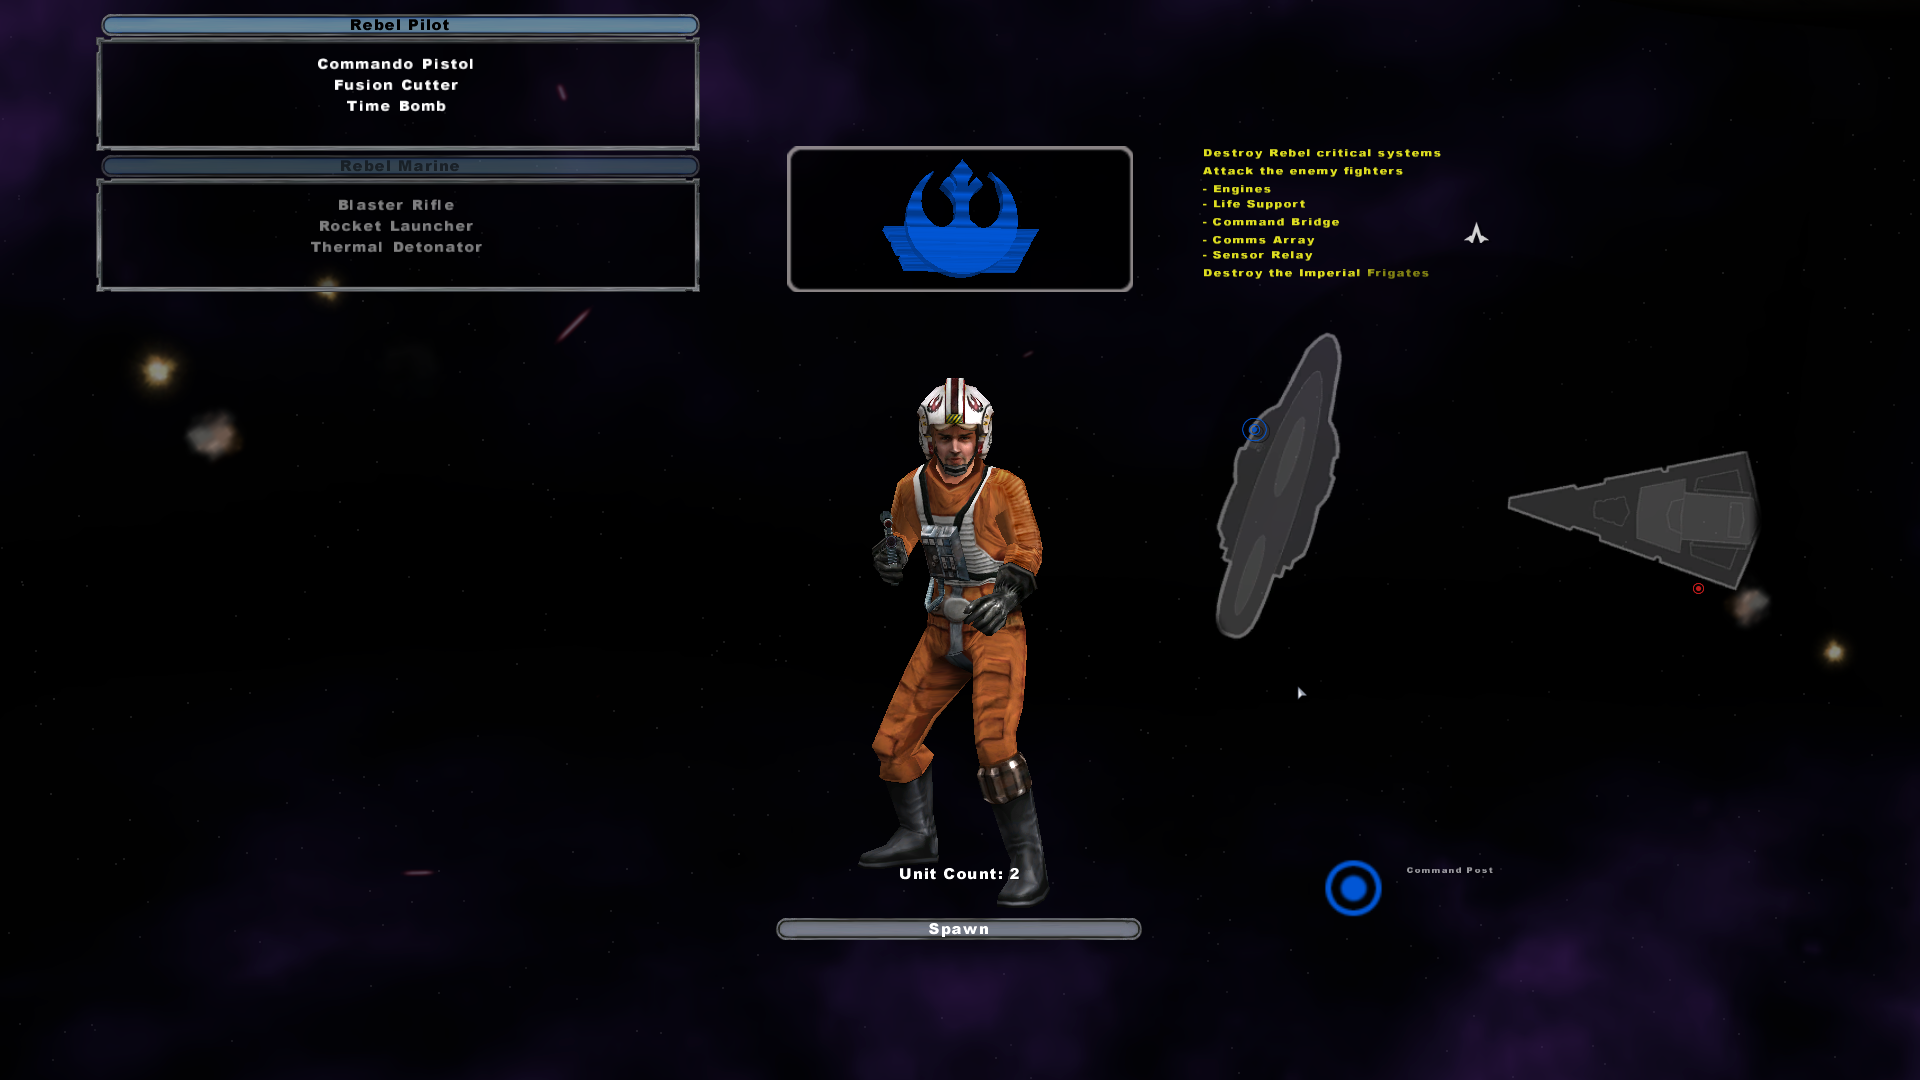 Resistance Command Post Icon image - Star Wars: A New Frontier mod